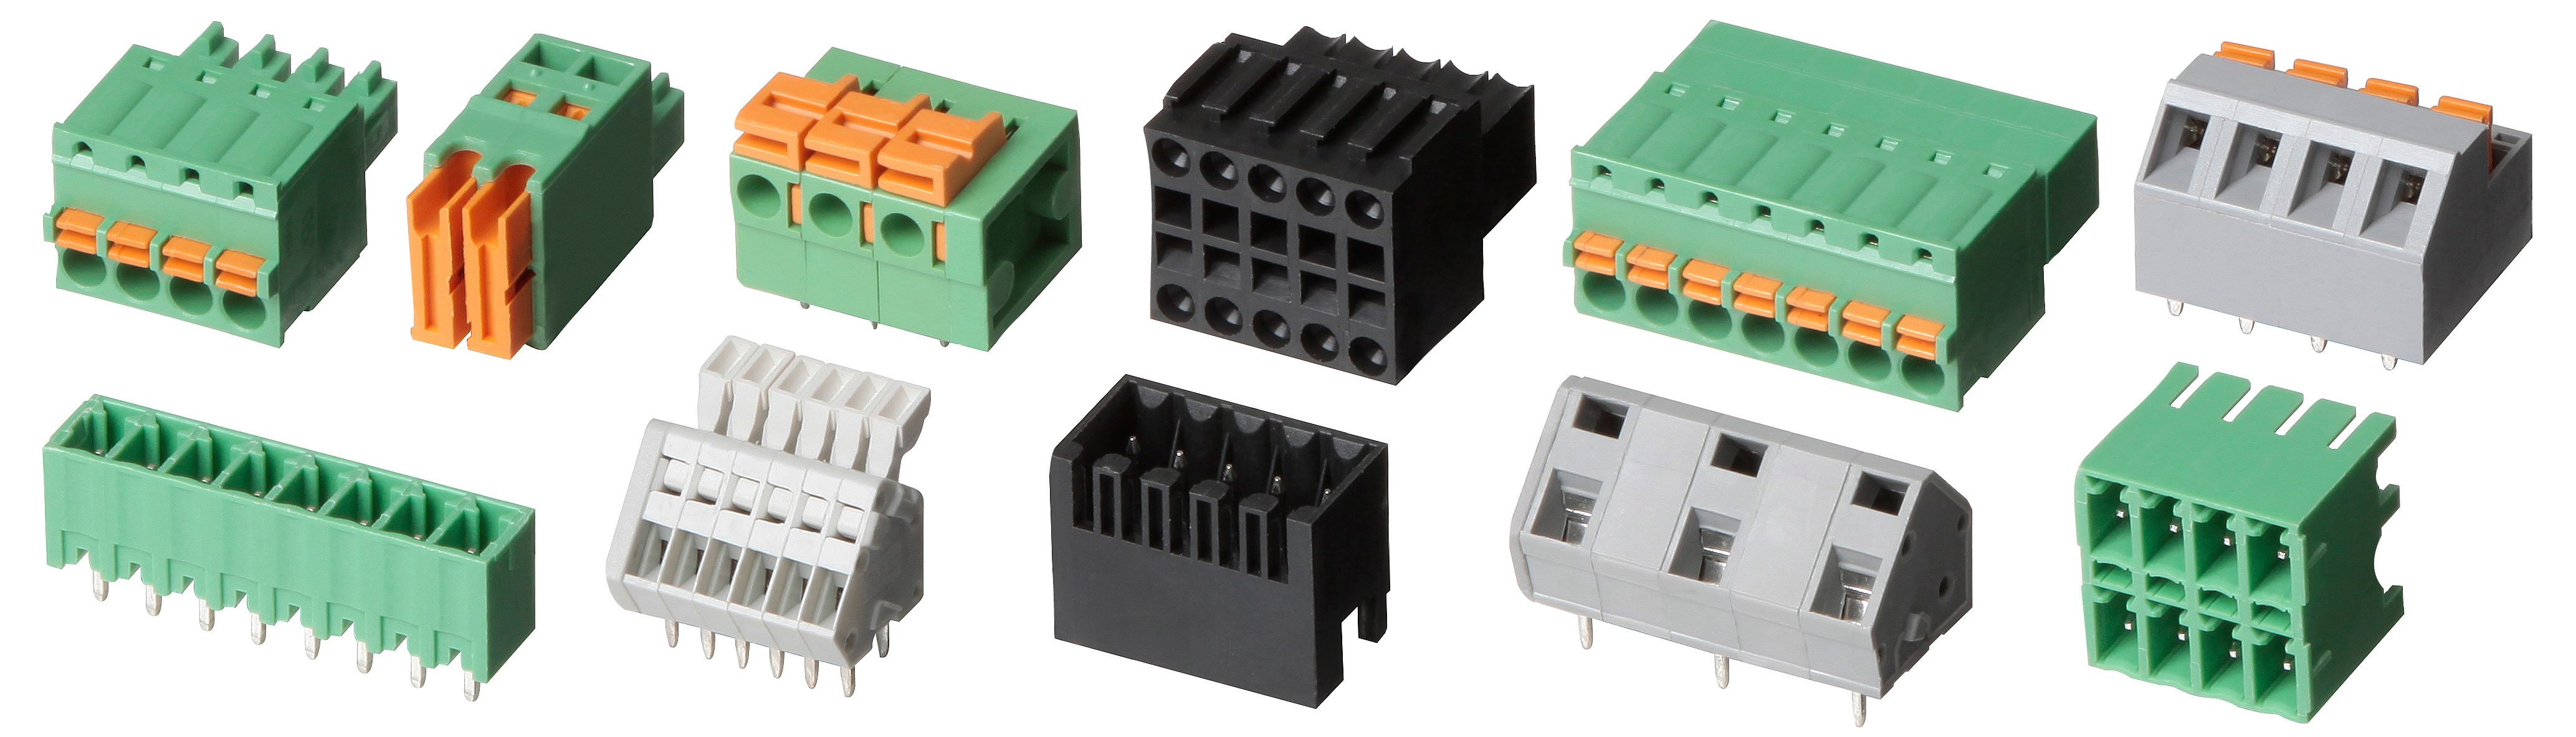 Terminal blocks and their application